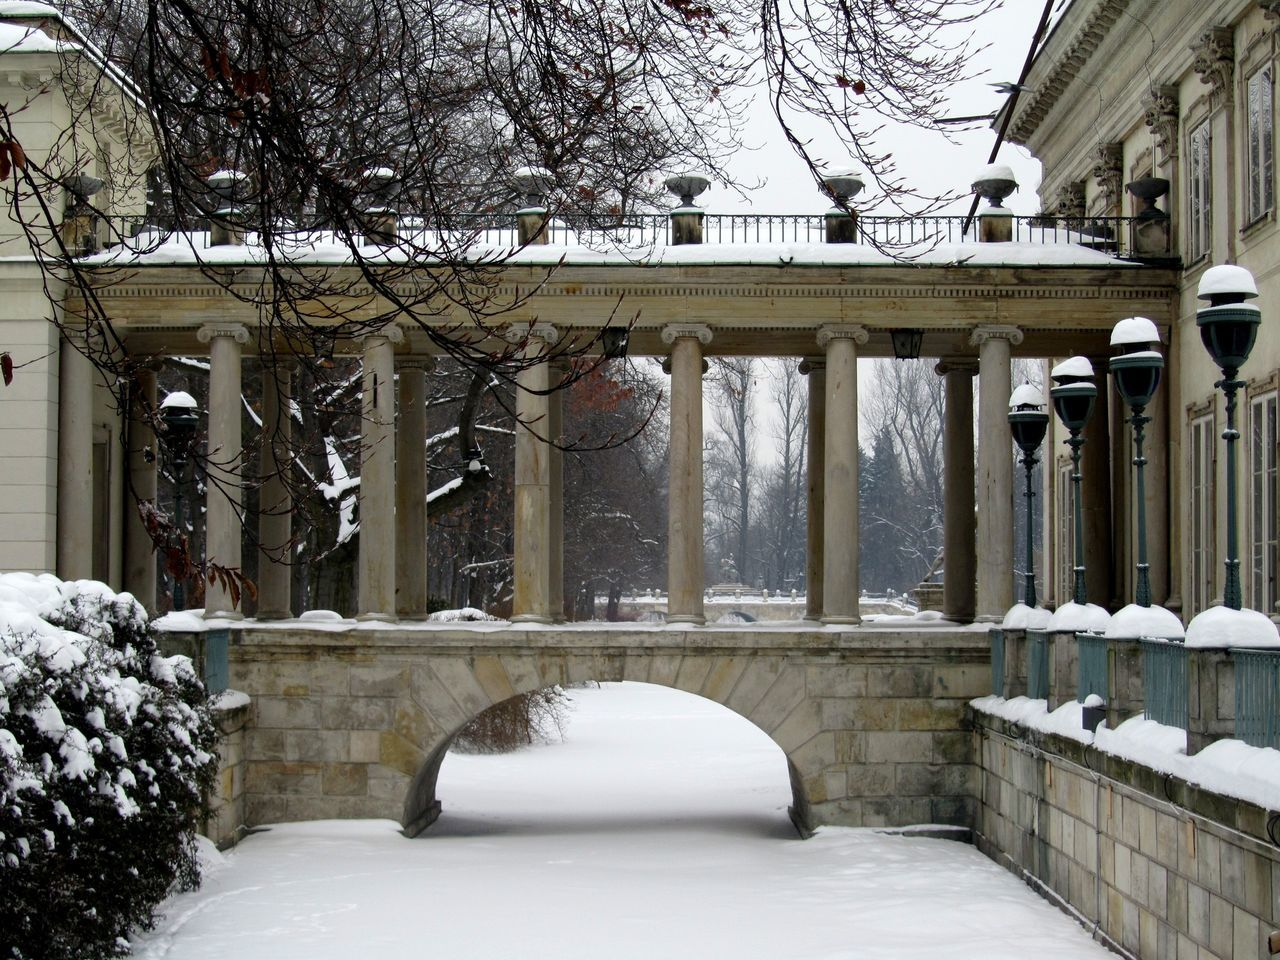 architecture, built structure, building exterior, winter, snow, tree, cold temperature, day, outdoors, no people, bare tree, nature